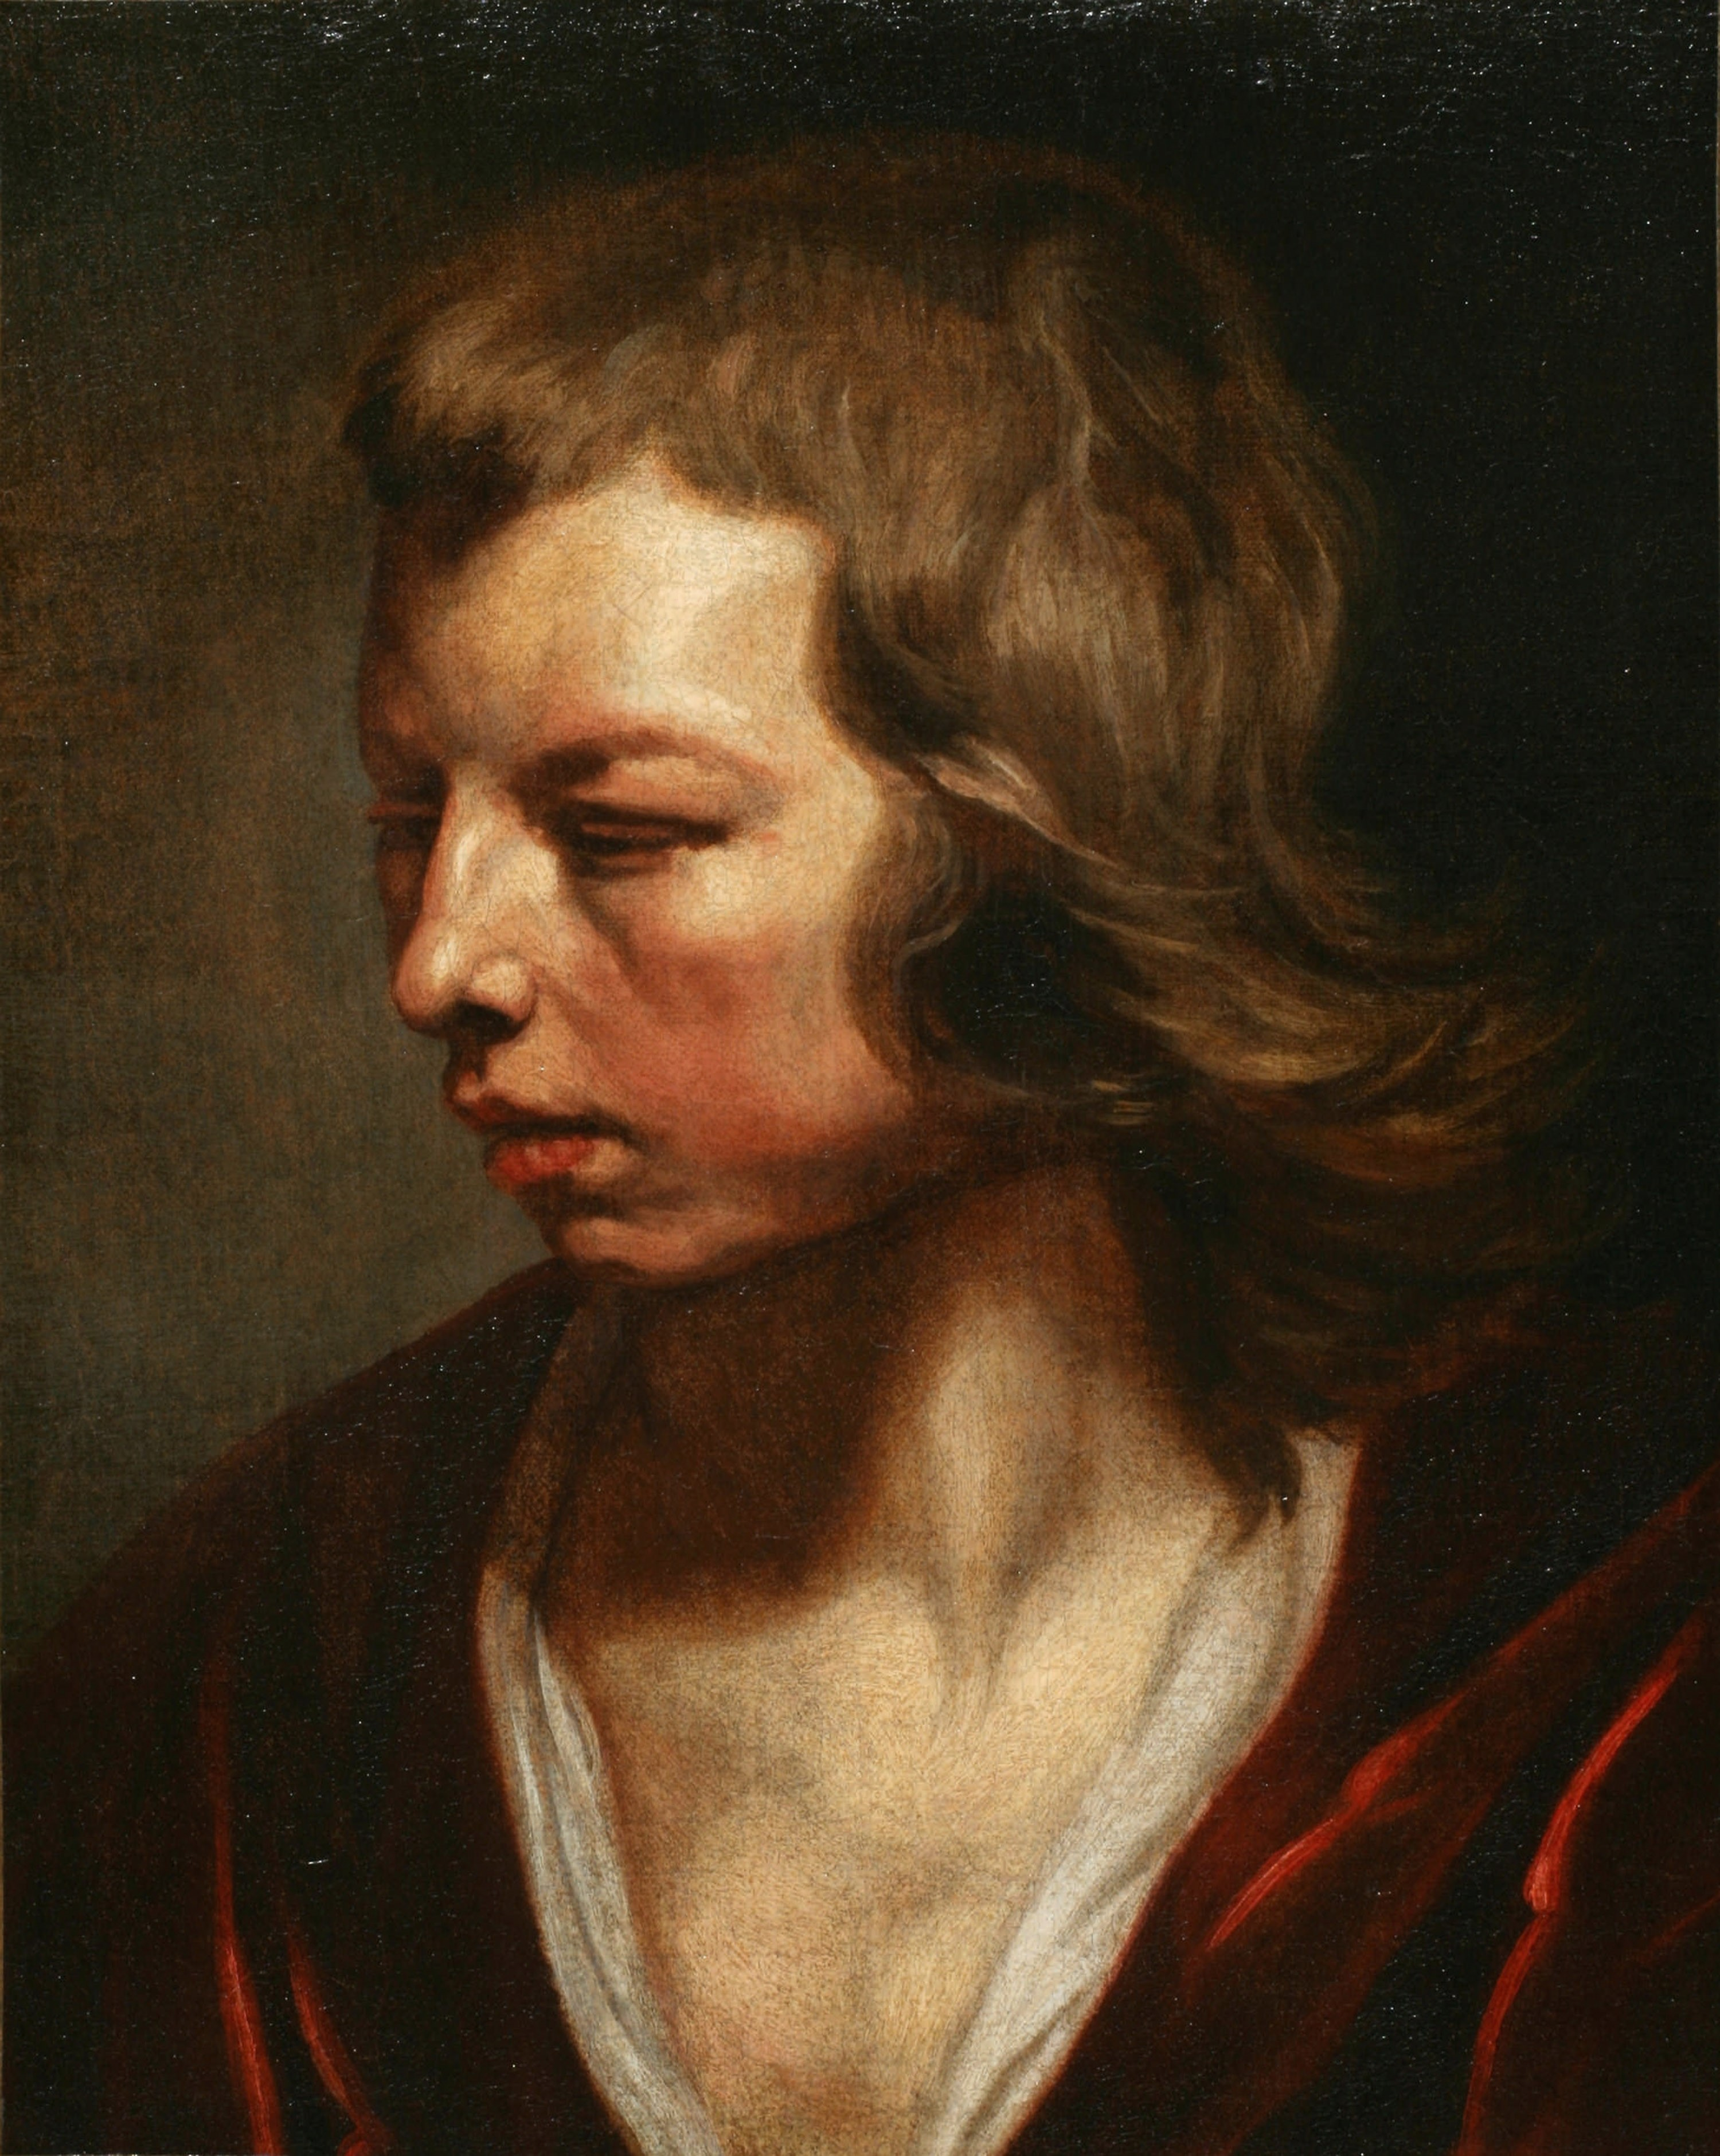 Michaelina Wautier's Study Of A Young Boy Turned Away, part of the Sotheby's sale The Female Triumphant